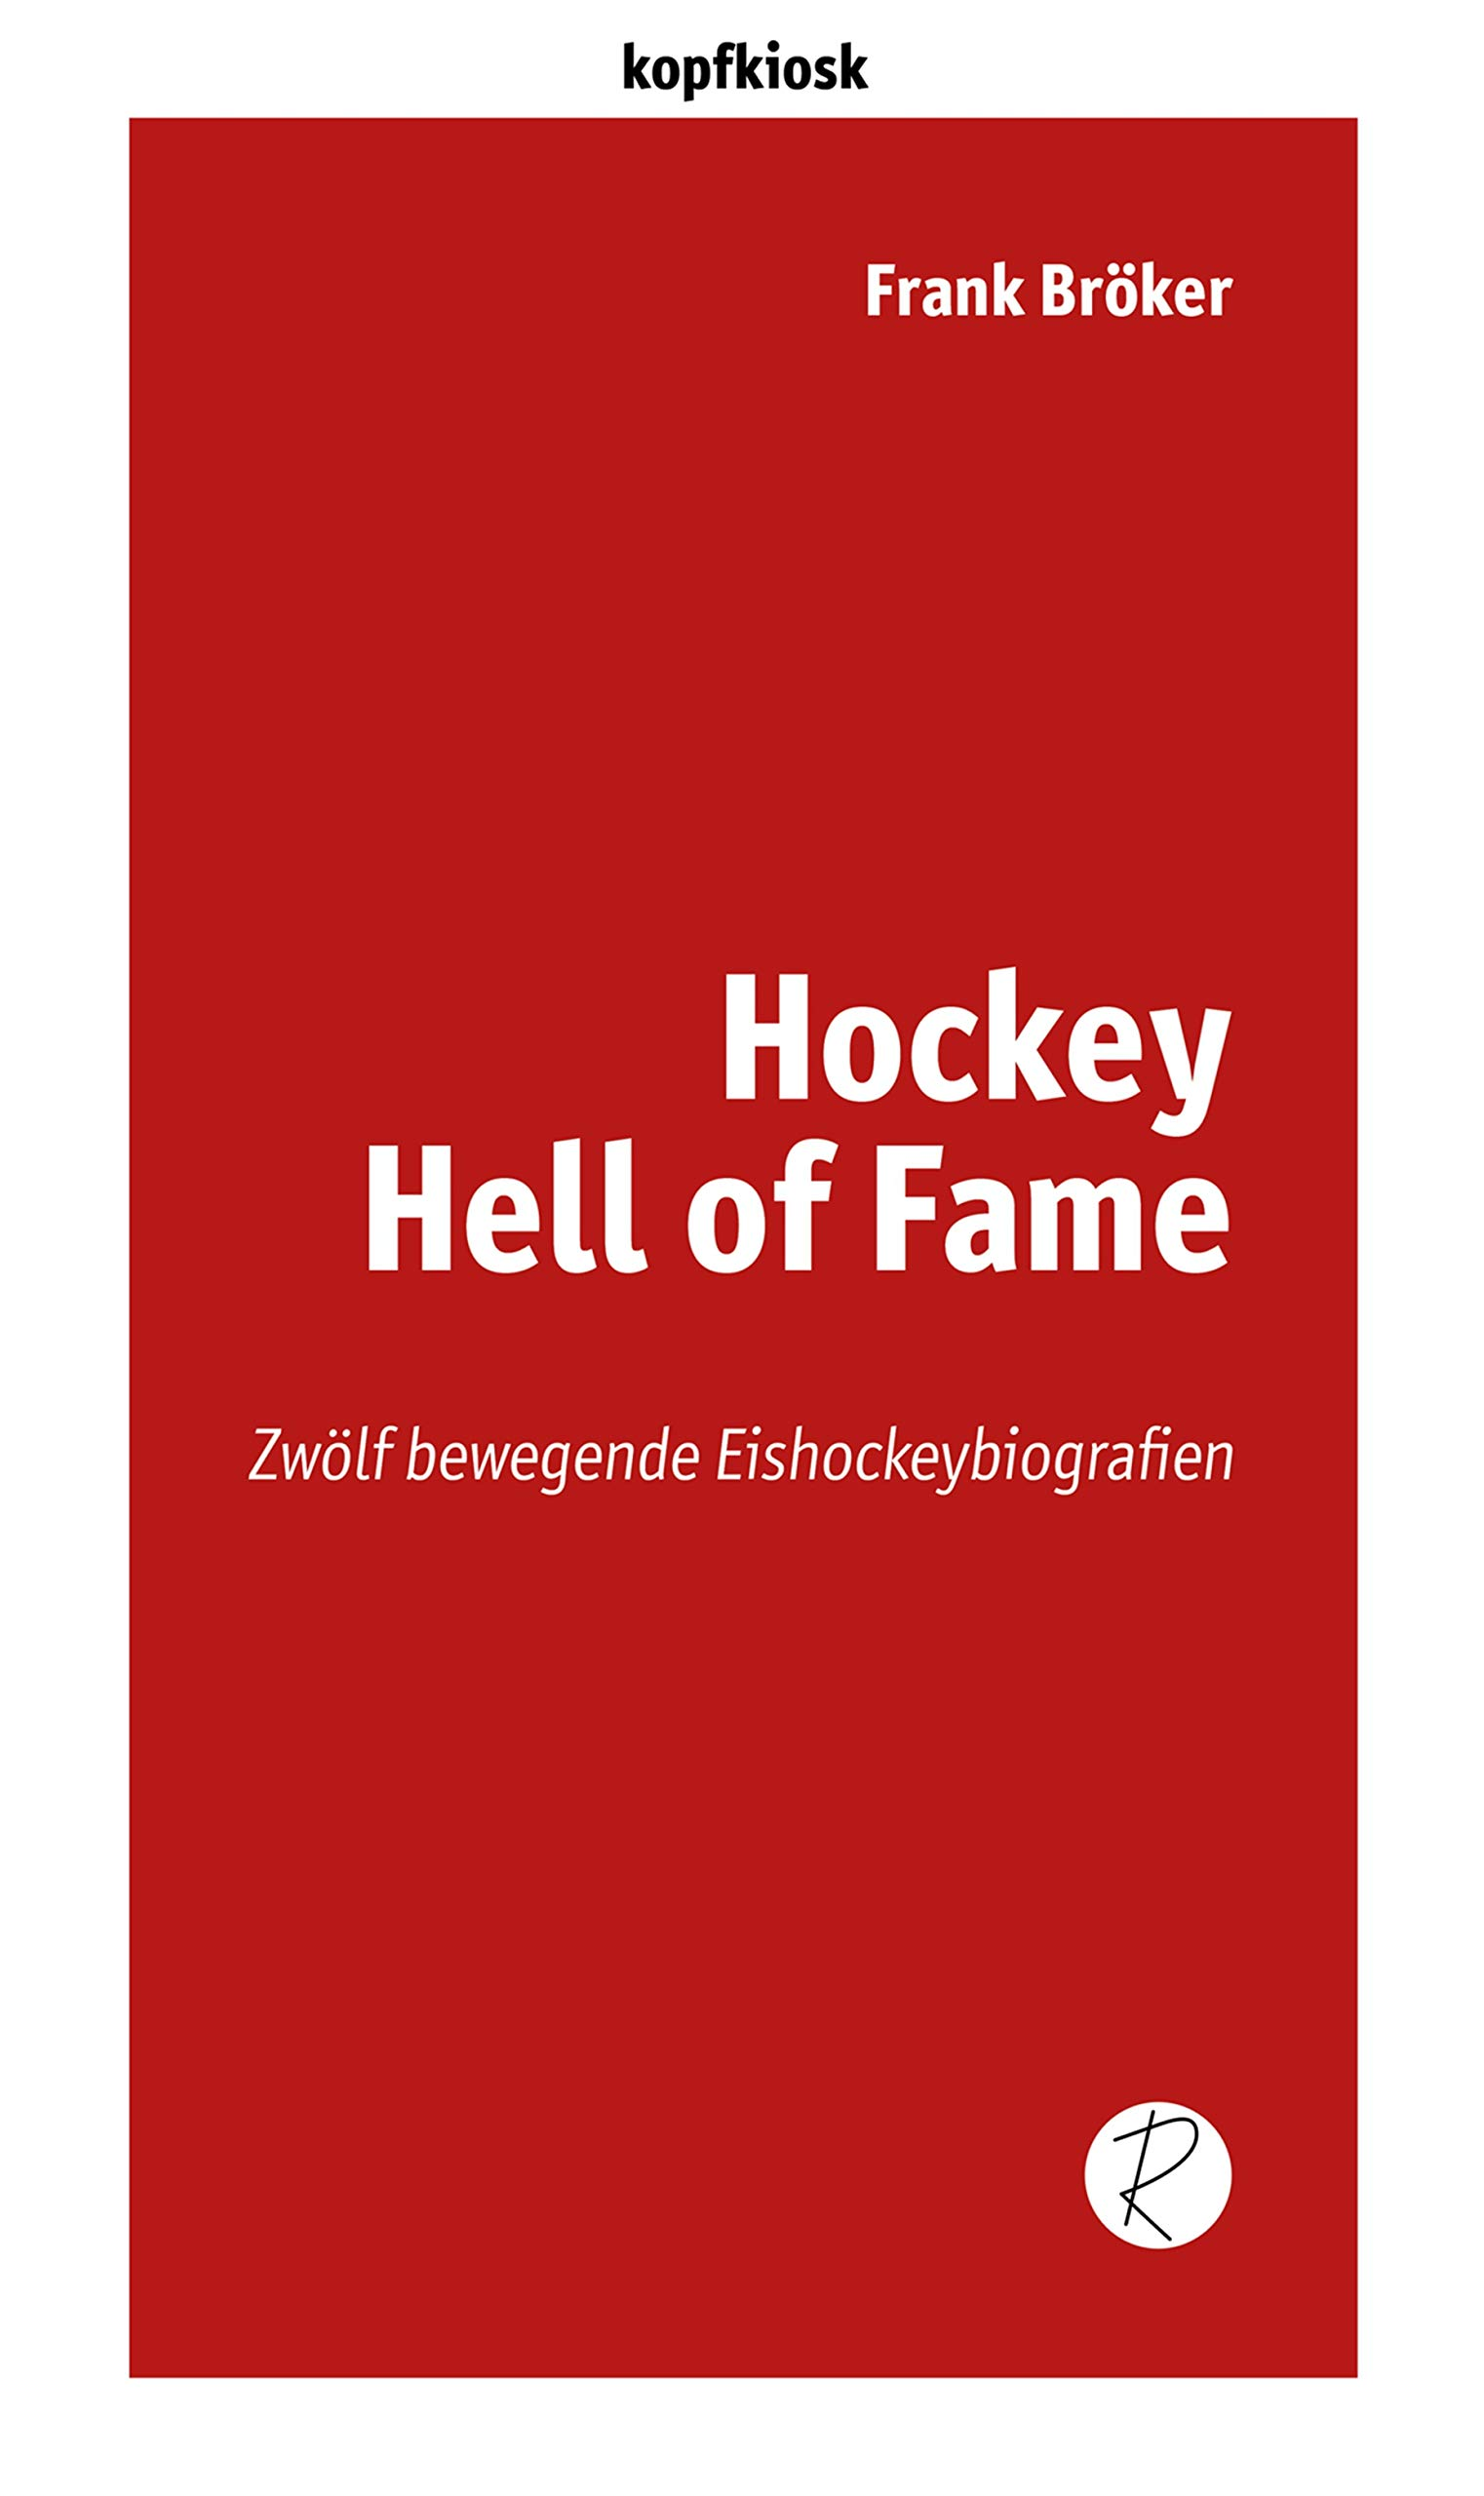 Download Hockey Hell of Fame: Zwölf bewegende Eishockeybiografien (edition kopfkiosk) (German Edition)